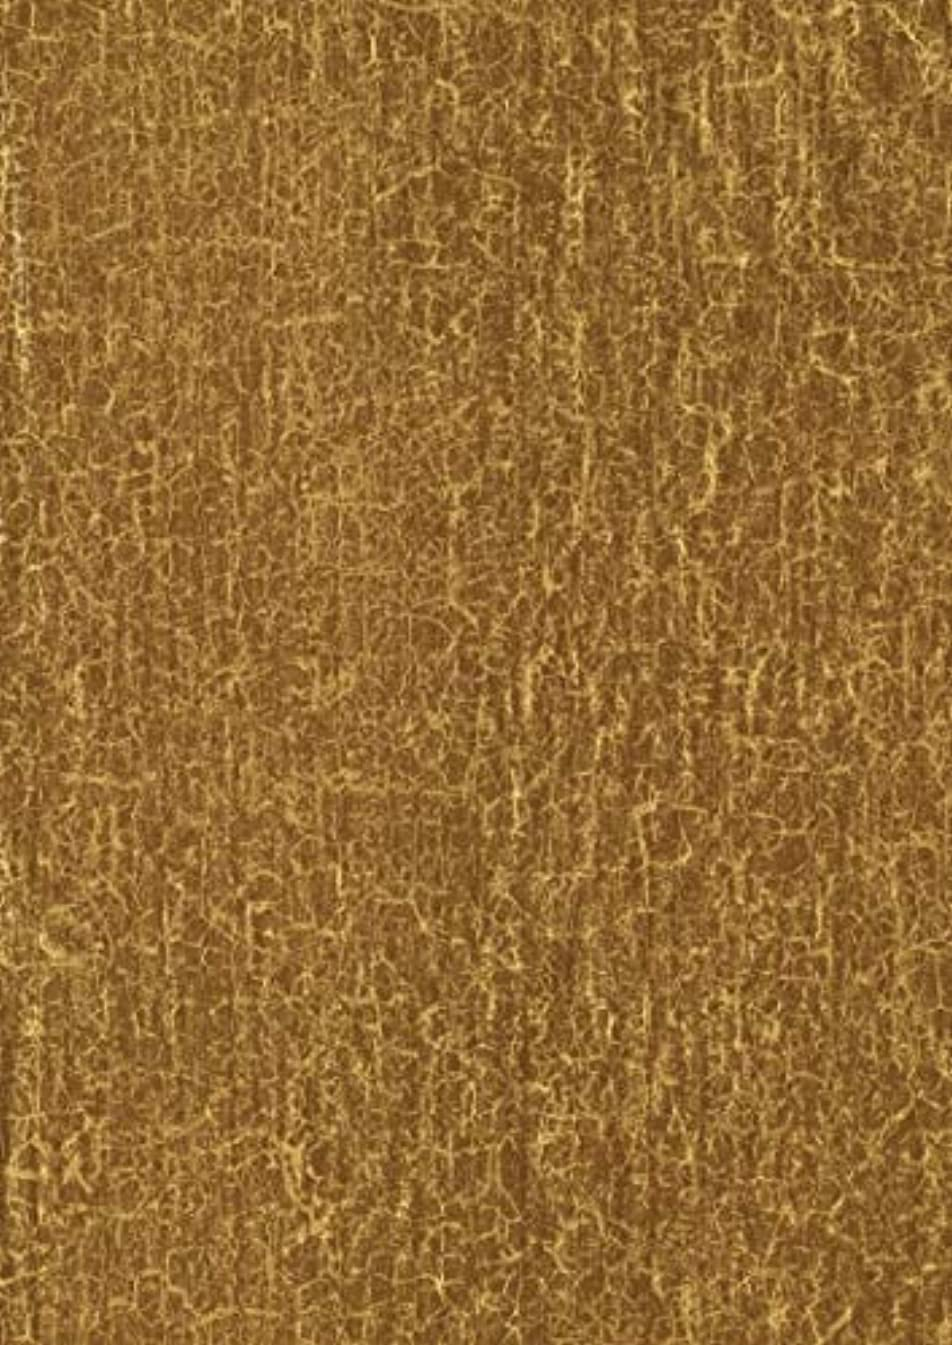 Decopatch Paper No. 297 Pack of 20 Sheets (395 x 298 mm, Ideal for Your papermaches) Yellow craquelé Gold